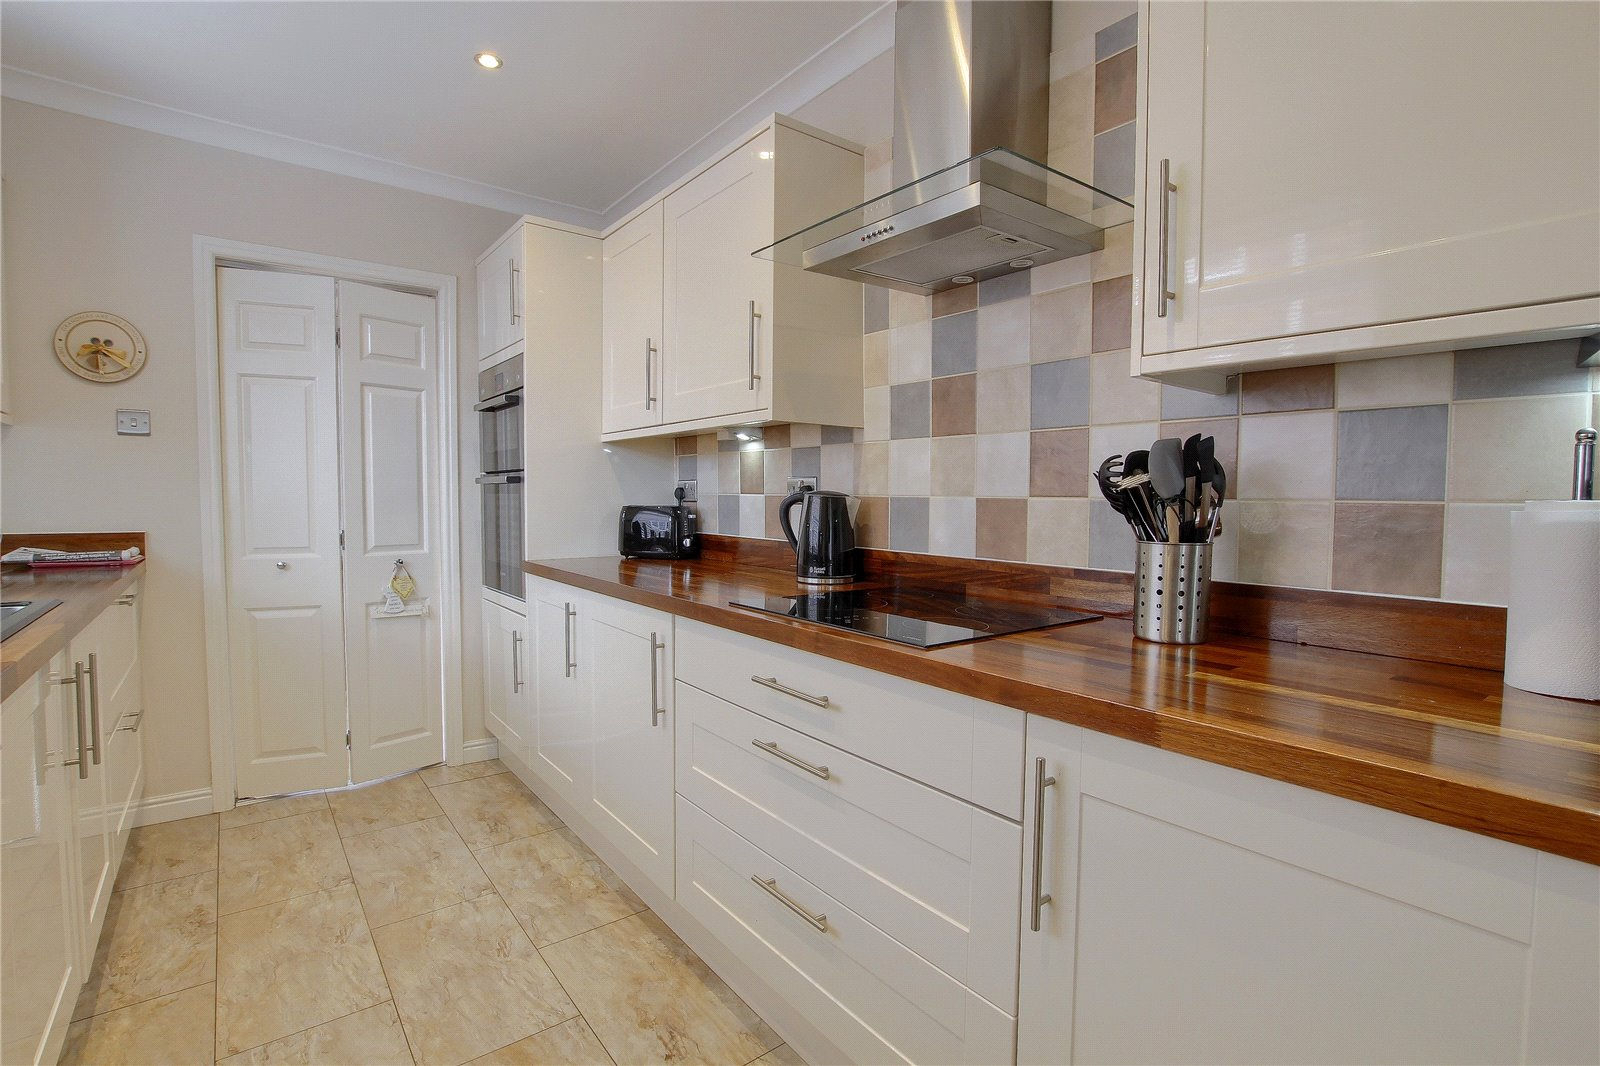 4 bed house for sale in Oldford Crescent, Acklam  - Property Image 16